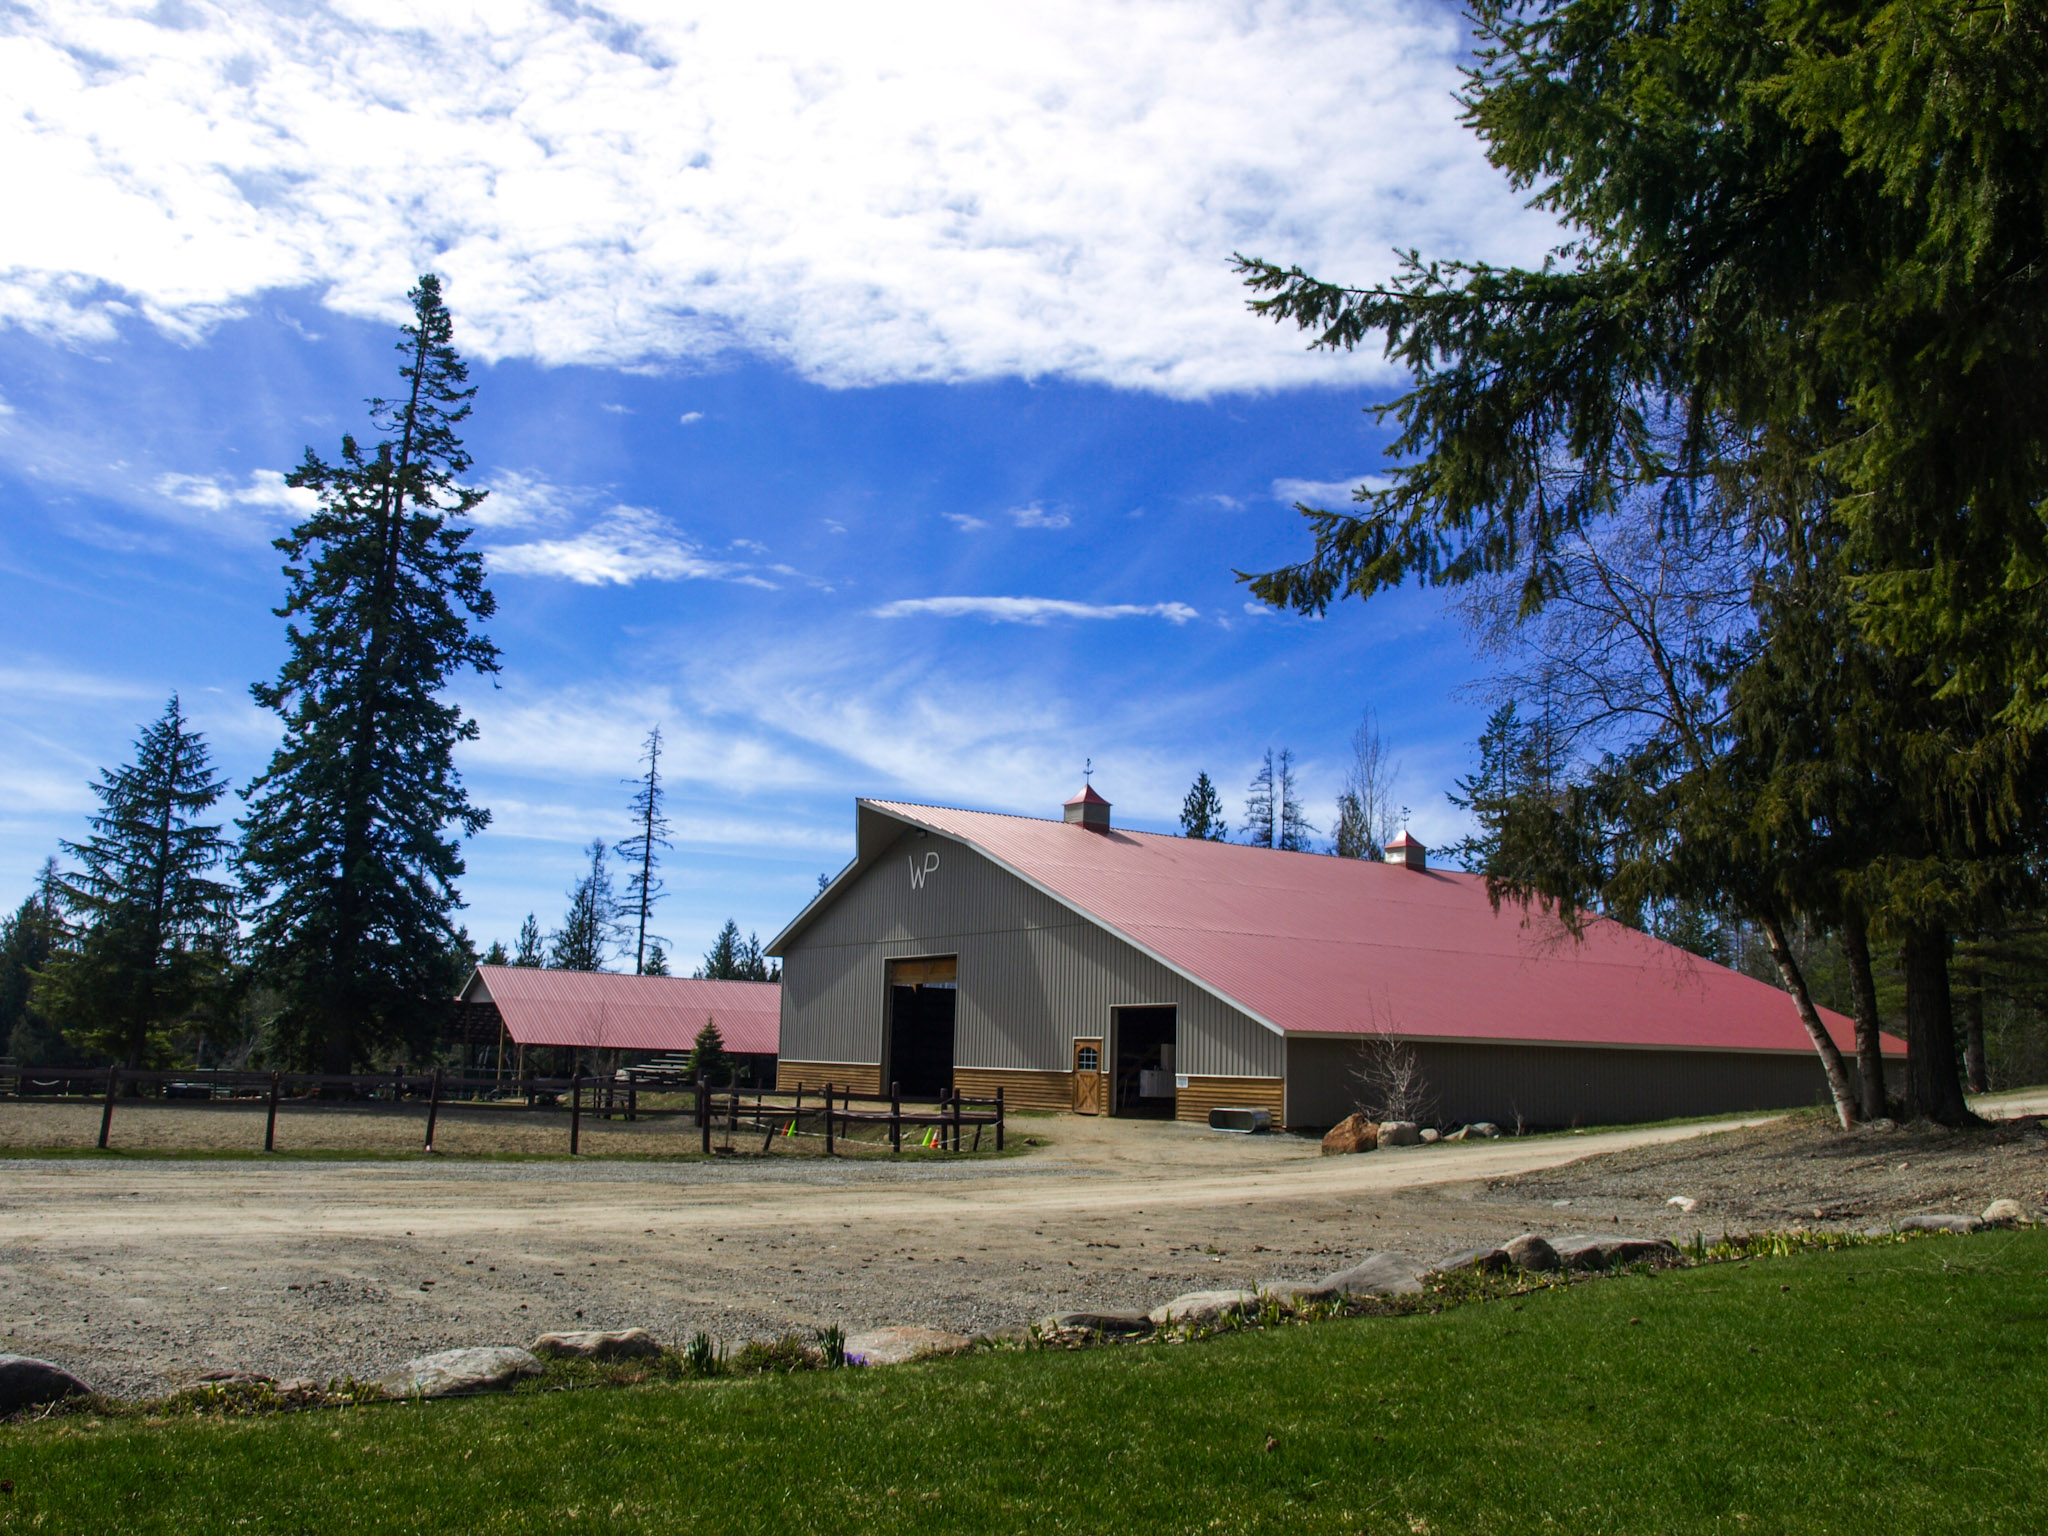 Large barn with red roof and blue sky above